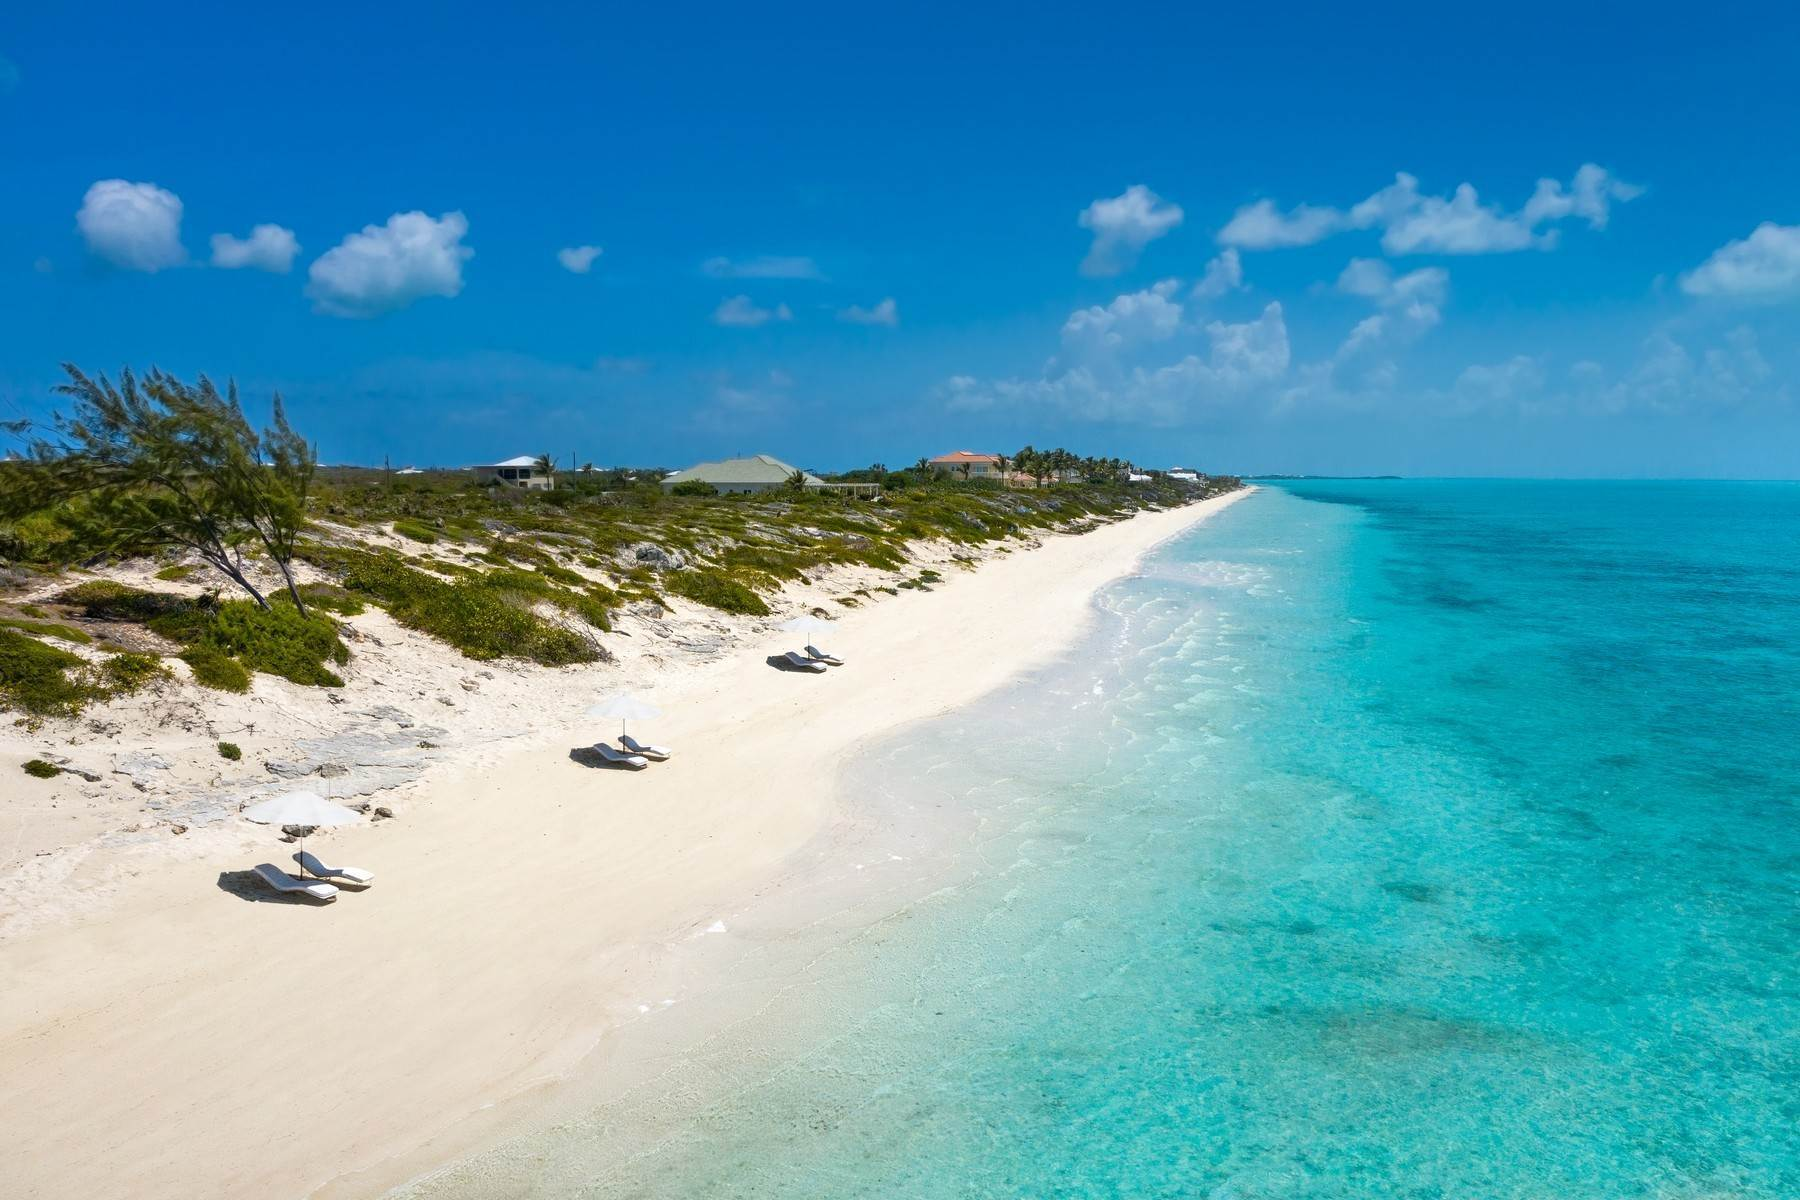 9. Single Family Homes for Sale at LONG BAY BEACH DUNE VILLA 1 AT SOUTH BANK - THE OCEAN ESTATE South Bank, Long Bay, Providenciales Turks And Caicos Islands